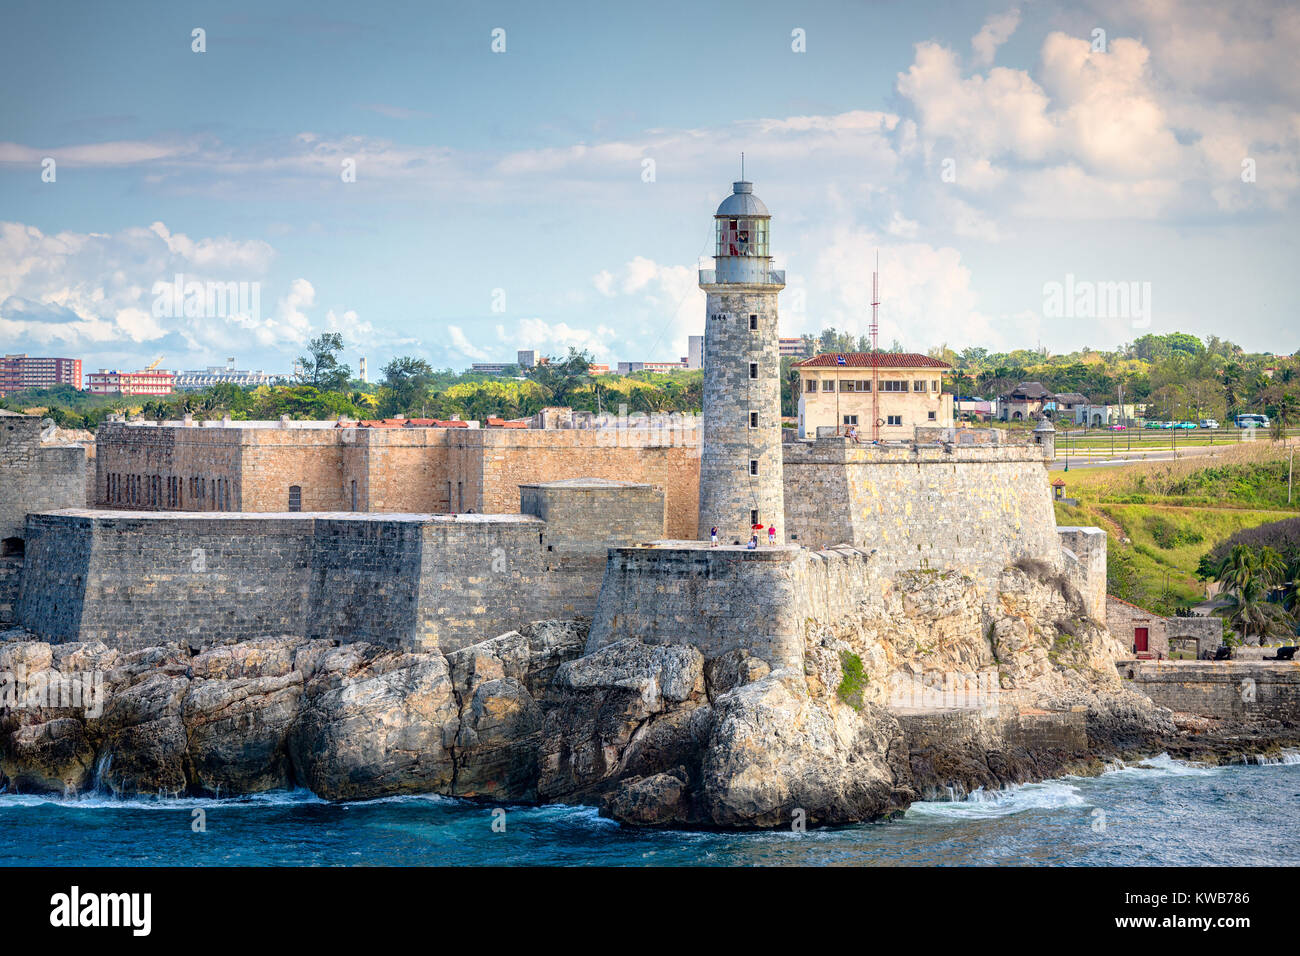 Havana, Cuba light house of La Cabana Fort. - Stock Image